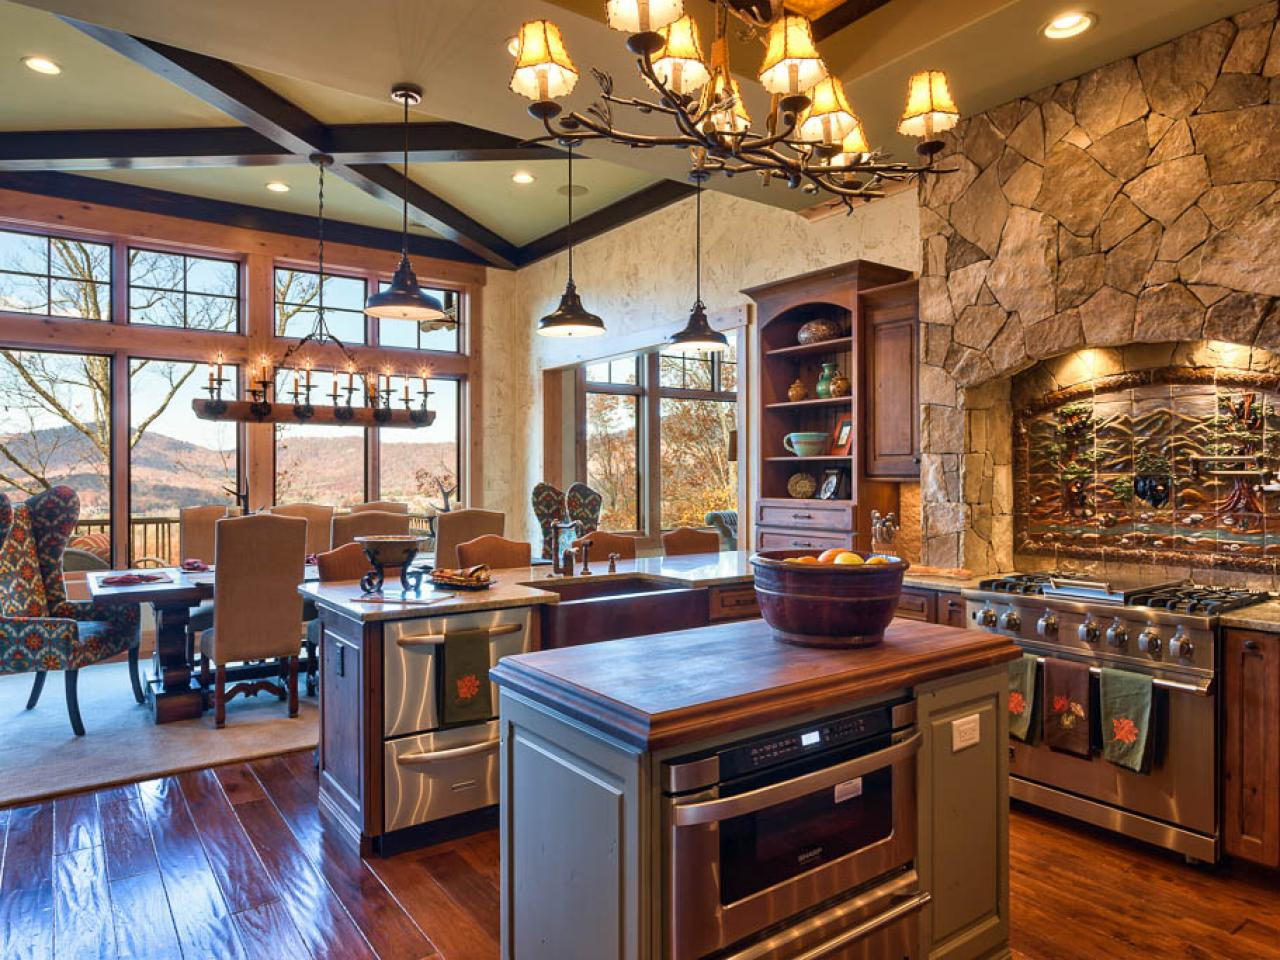 Stone Kitchen Interior Decoration Ideas. Laquered wooden floor and the gray walls combination looks organic